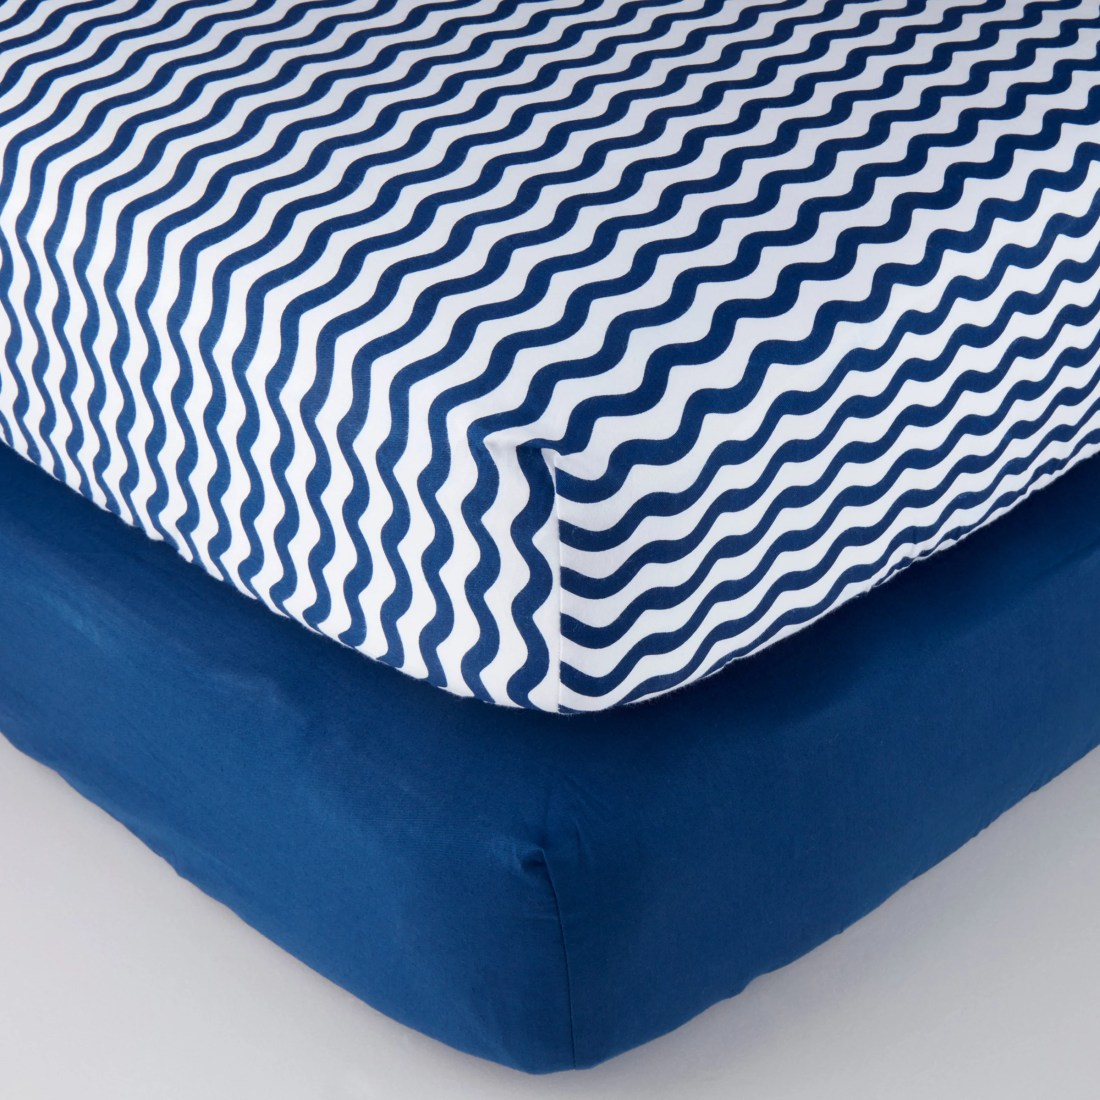 Parent's Choice 100% Cotton Fitted Crib Sheets, Navy Chevron 2pk